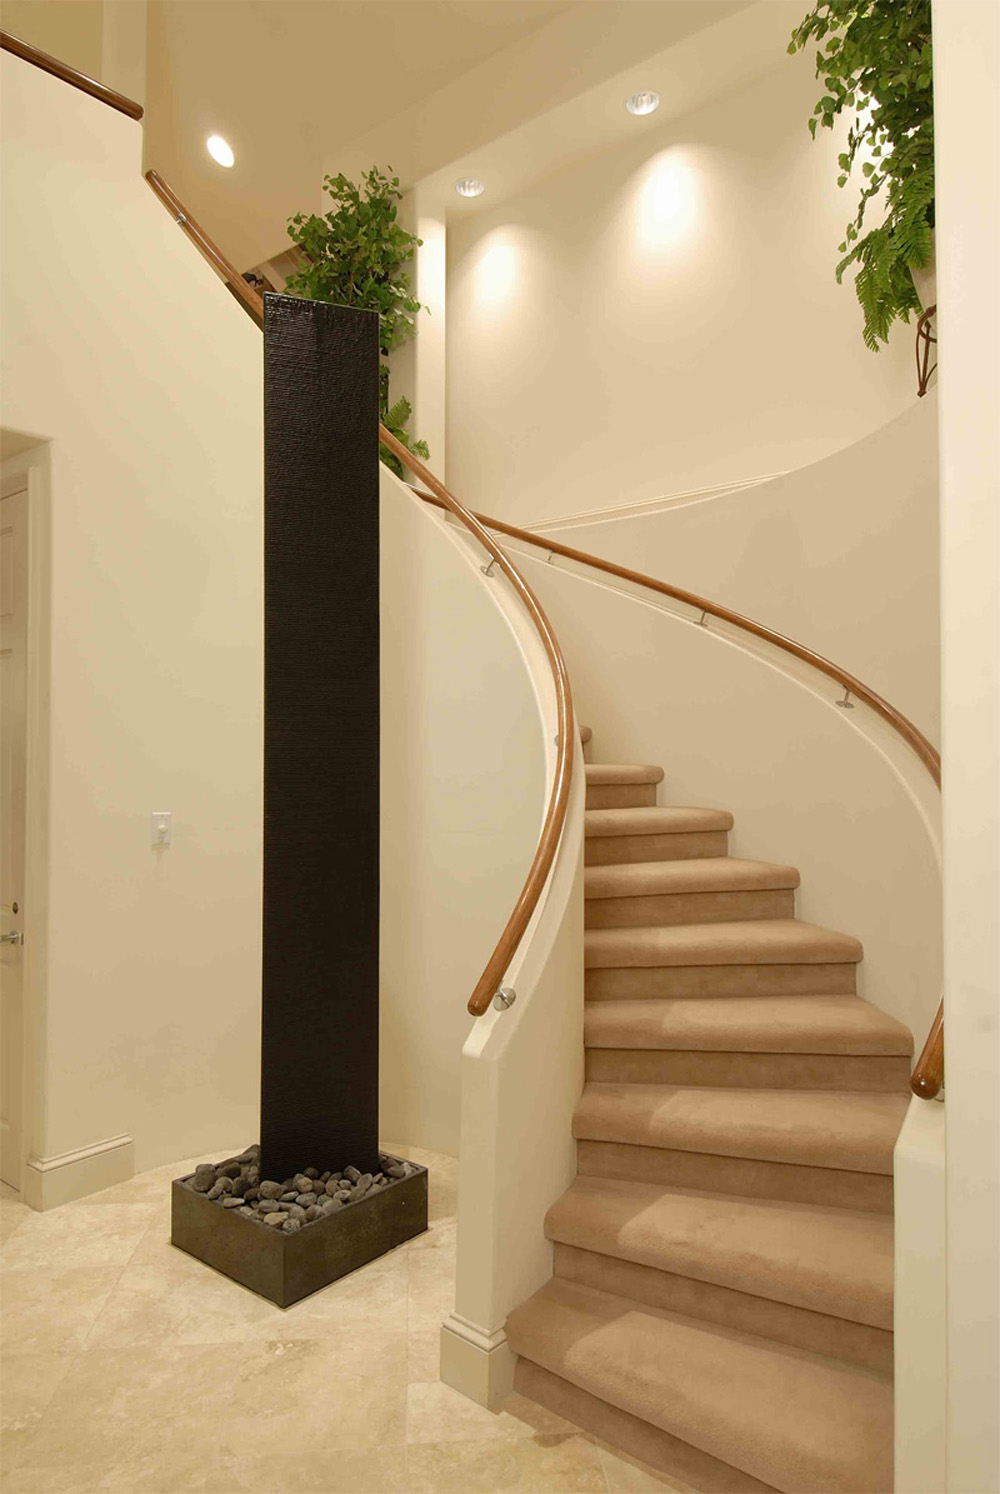 Beautiful Staircase Design Gallery - 10 Photos | Modern ...